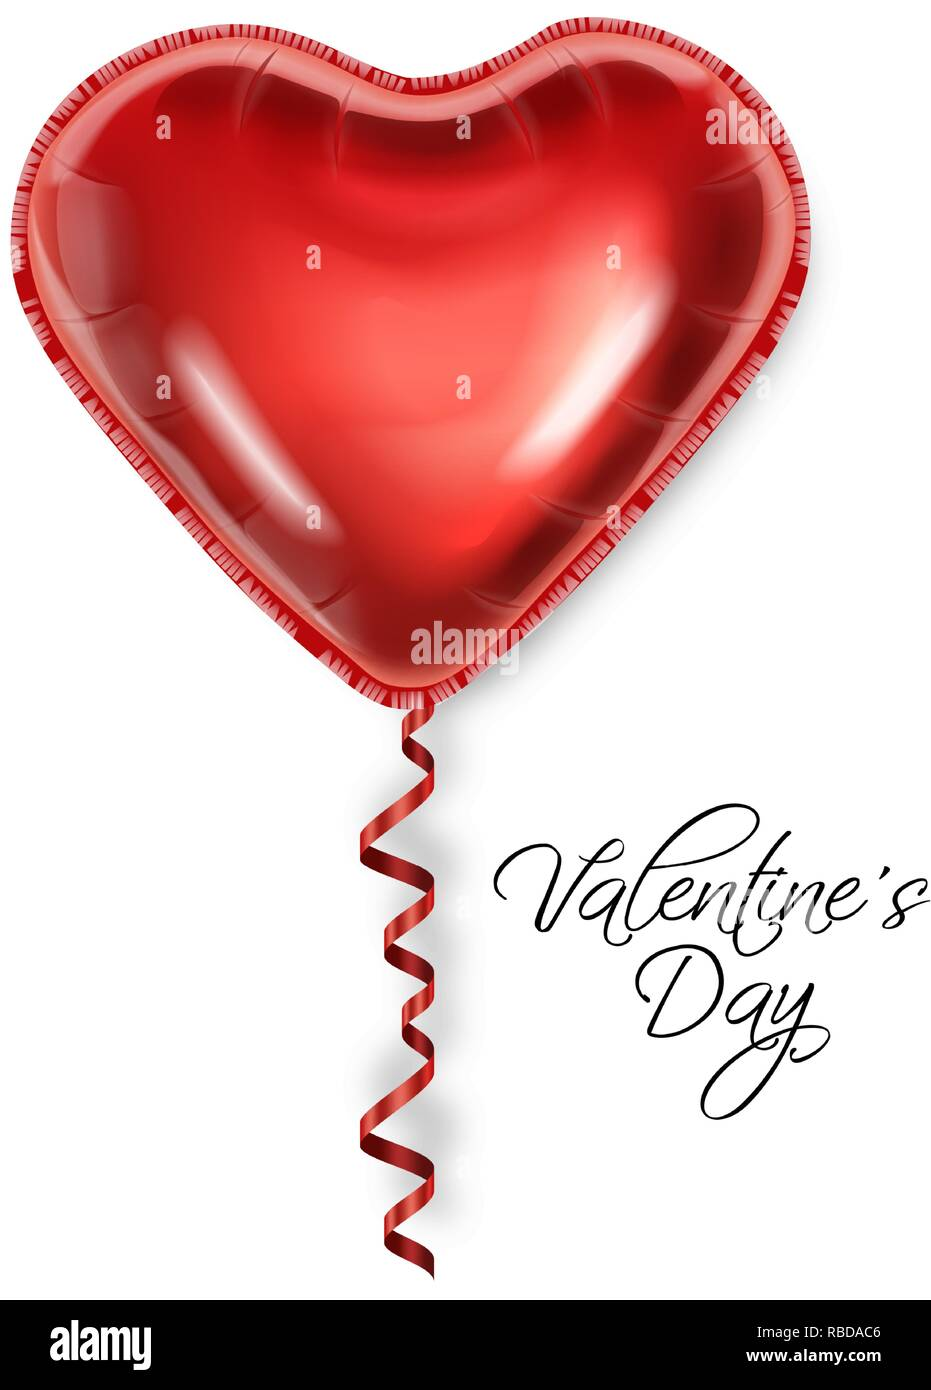 Valentines Day Card Templates | Red Balloon Heart Isolated On White Background Vector Realistic